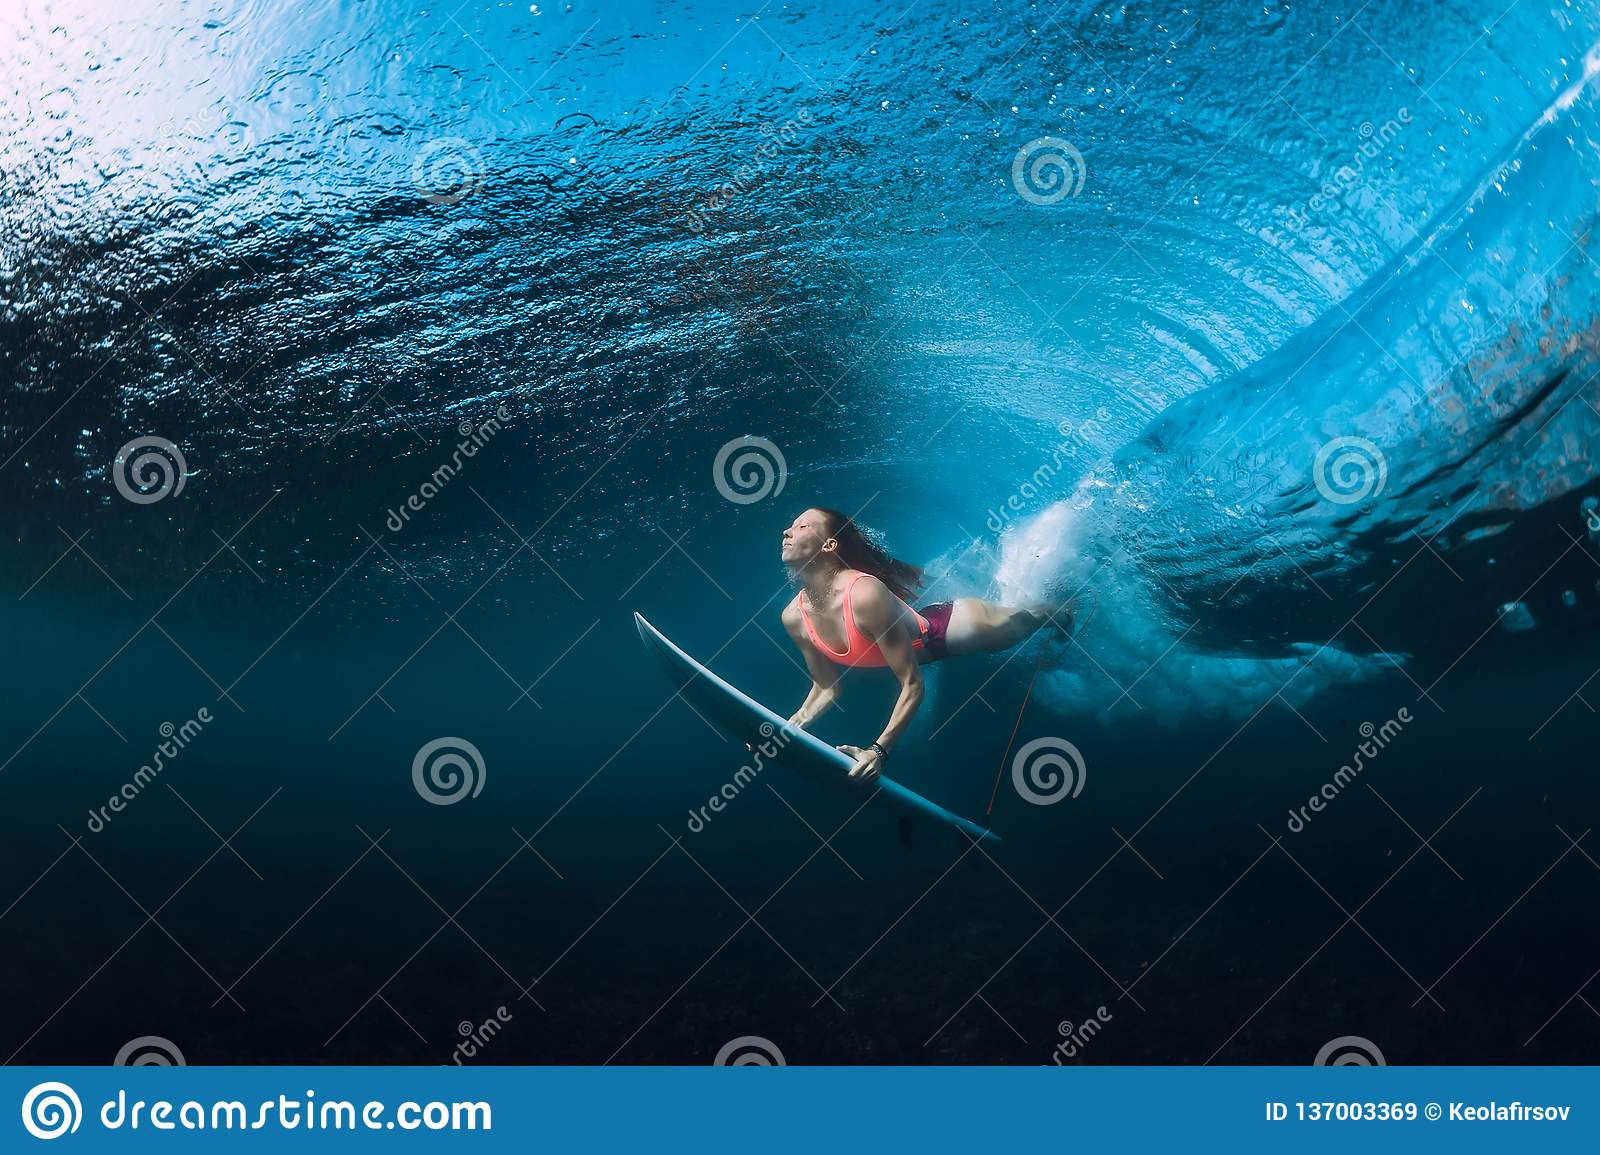 Surfer woman dive underwater with under wave